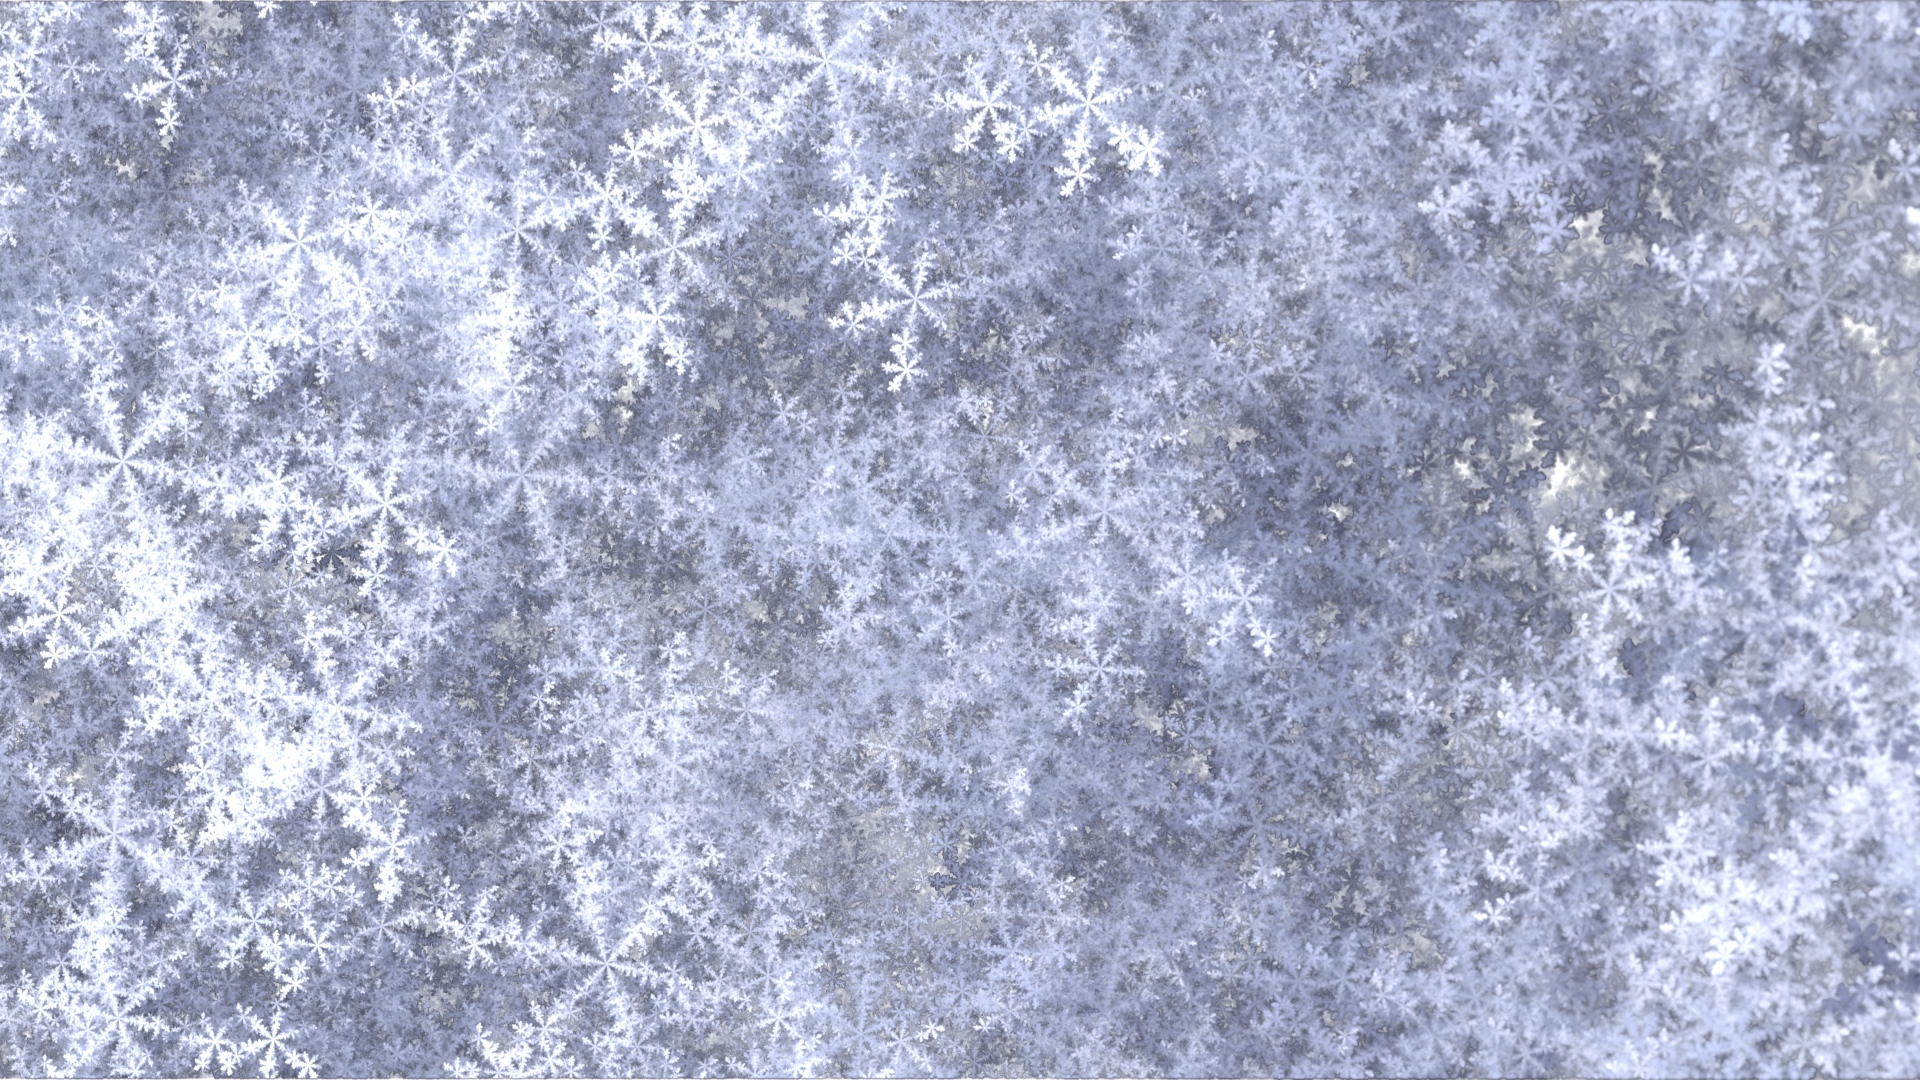 Awesomewallpaperfileswordpresscom201201snowfall By Thargor6 1920x1080